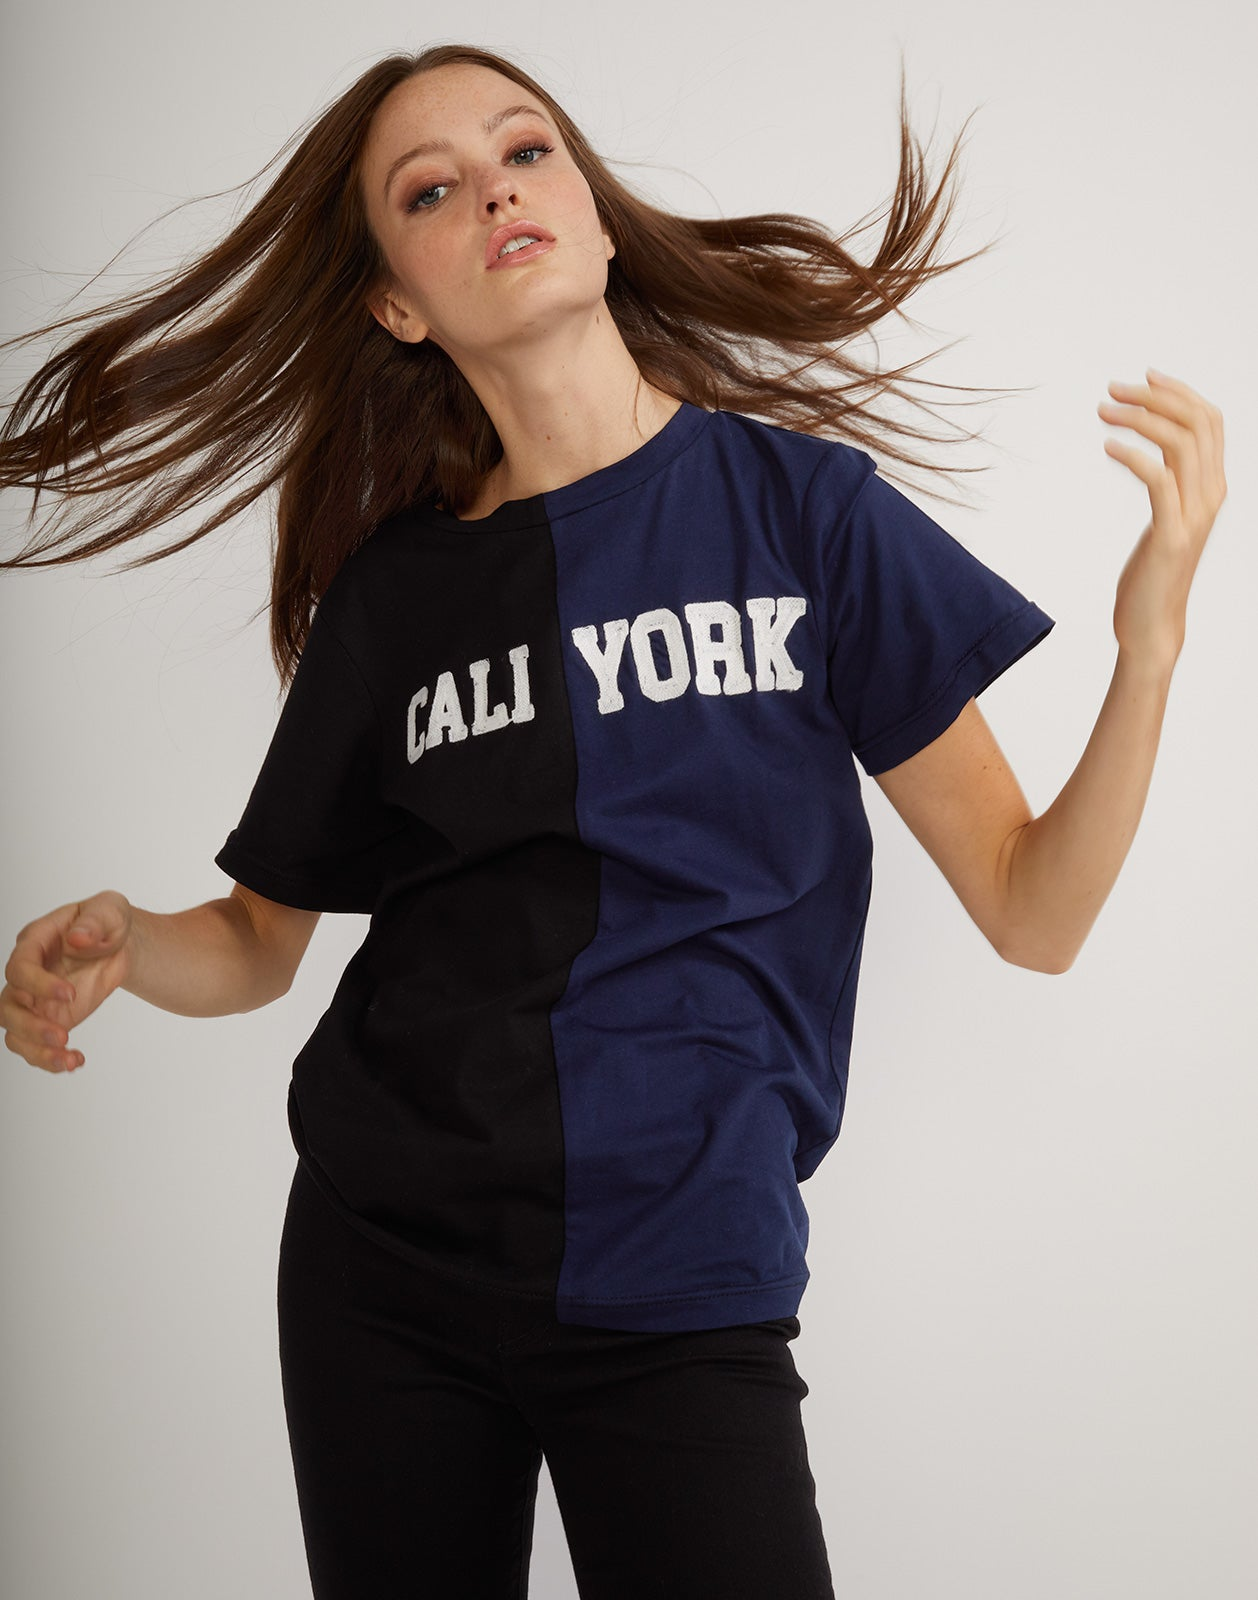 Front side detail of the short sleeved half black, half navy caliyork tee in soft cotton.